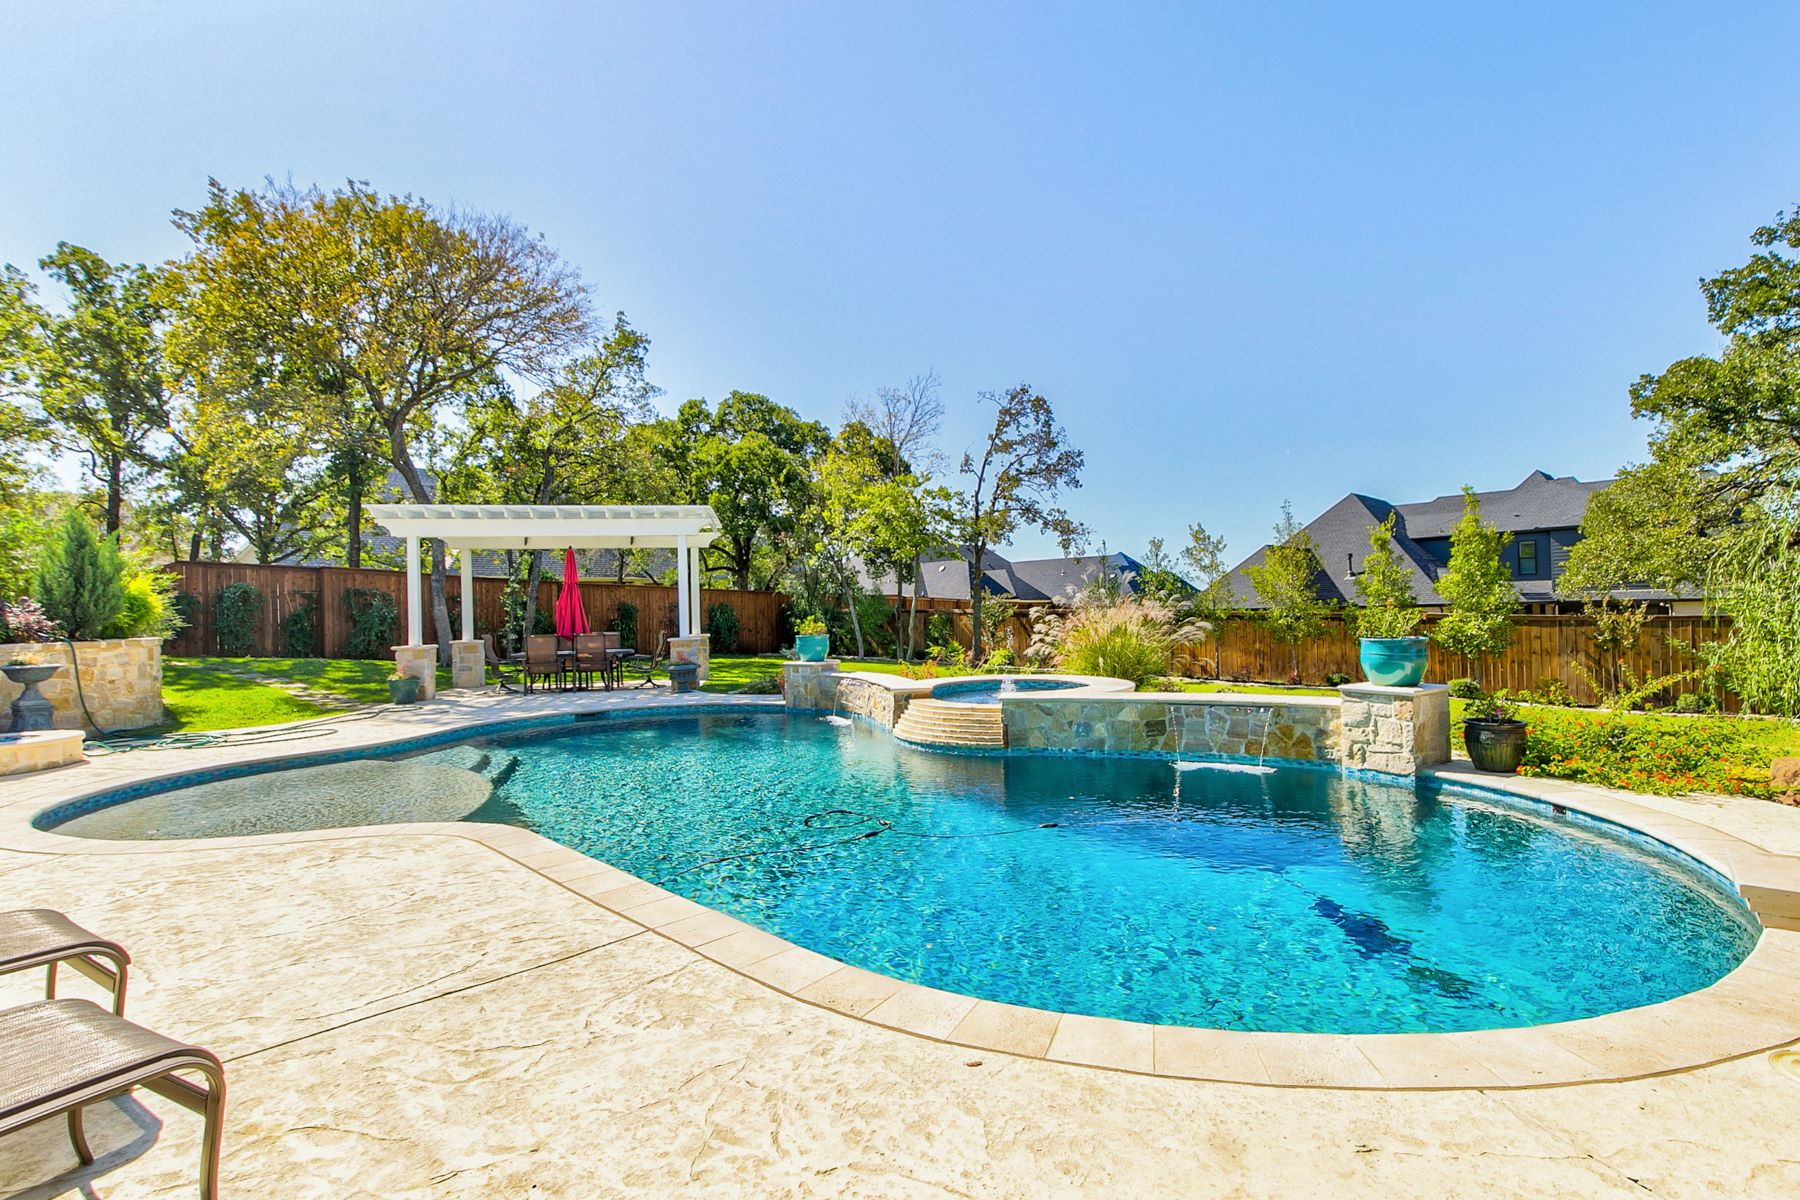 Single Family Homes for Sale at Sunsets By the Pool in Colleyville 6104 Legacy Estates Drive Colleyville, Texas 76034 United States